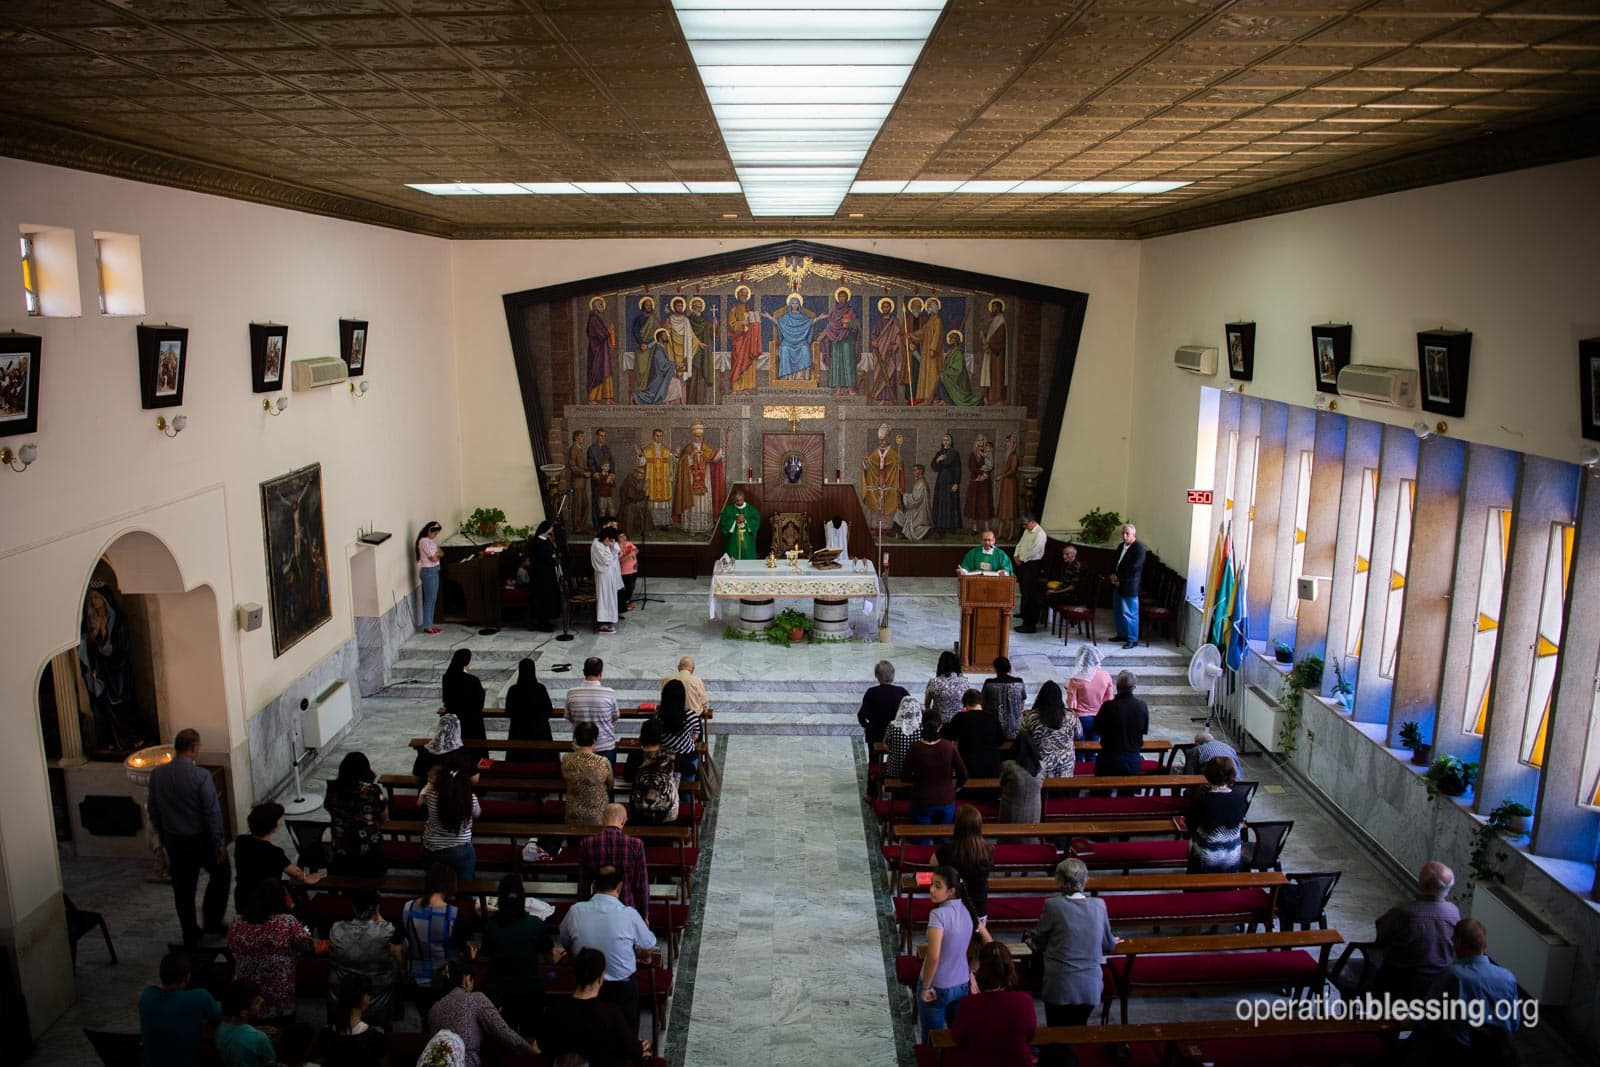 A Christian church in Jordan.